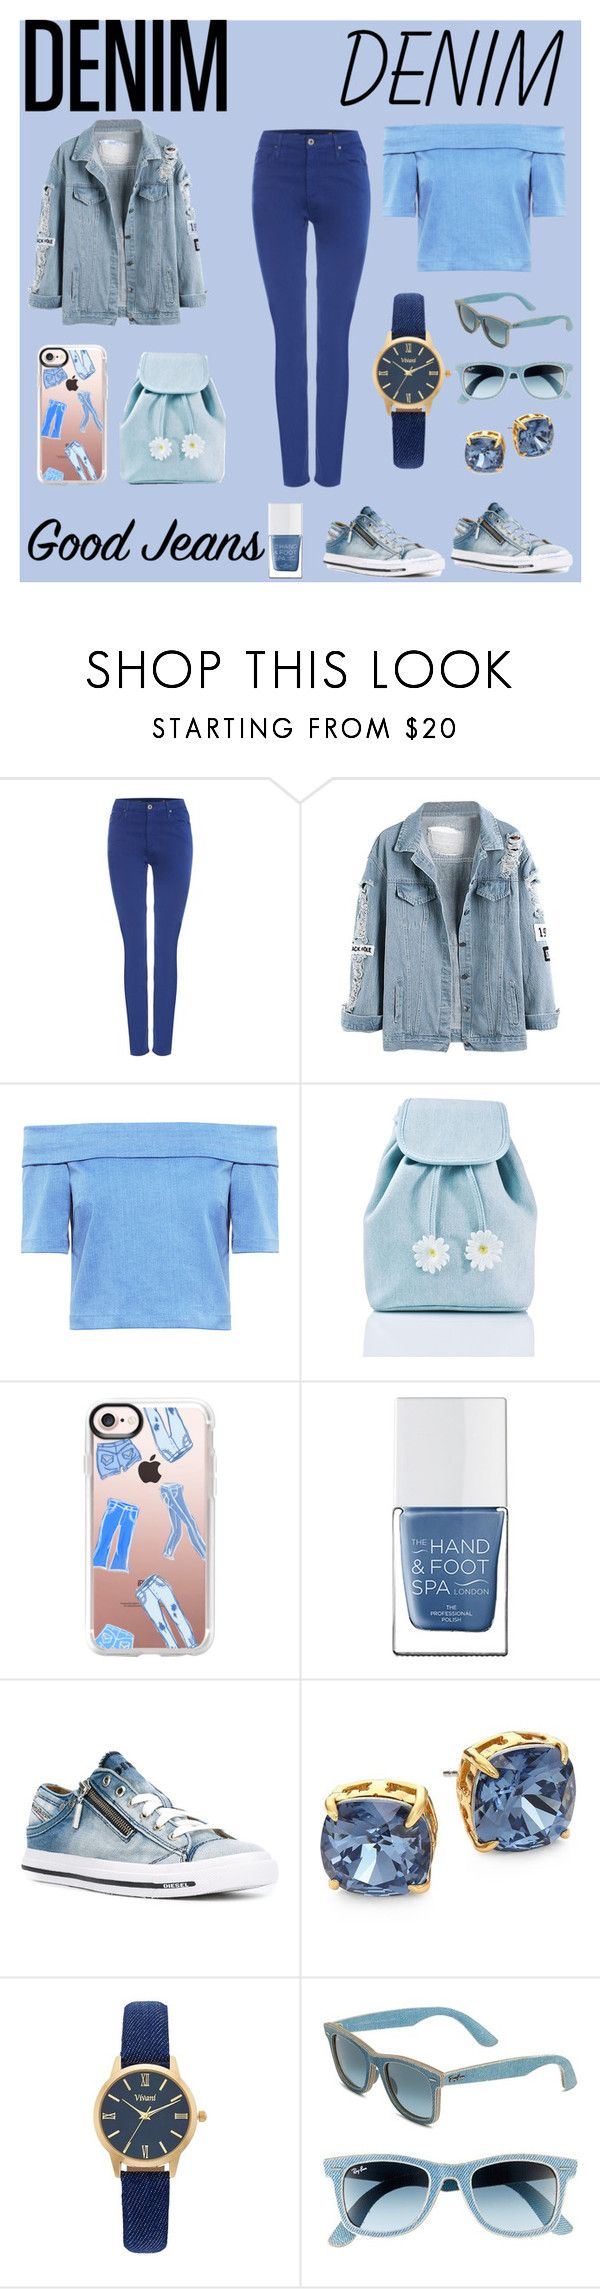 """""""A denim outfit : good jeans!!!!"""" by mariah9598 ❤ liked on Polyvore featuring AG Adriano Goldschmied, 3x1, Sugarbaby, Casetify, The Hand & Foot Spa, Diesel, Tory Burch, Vivani and Ray-Ban"""